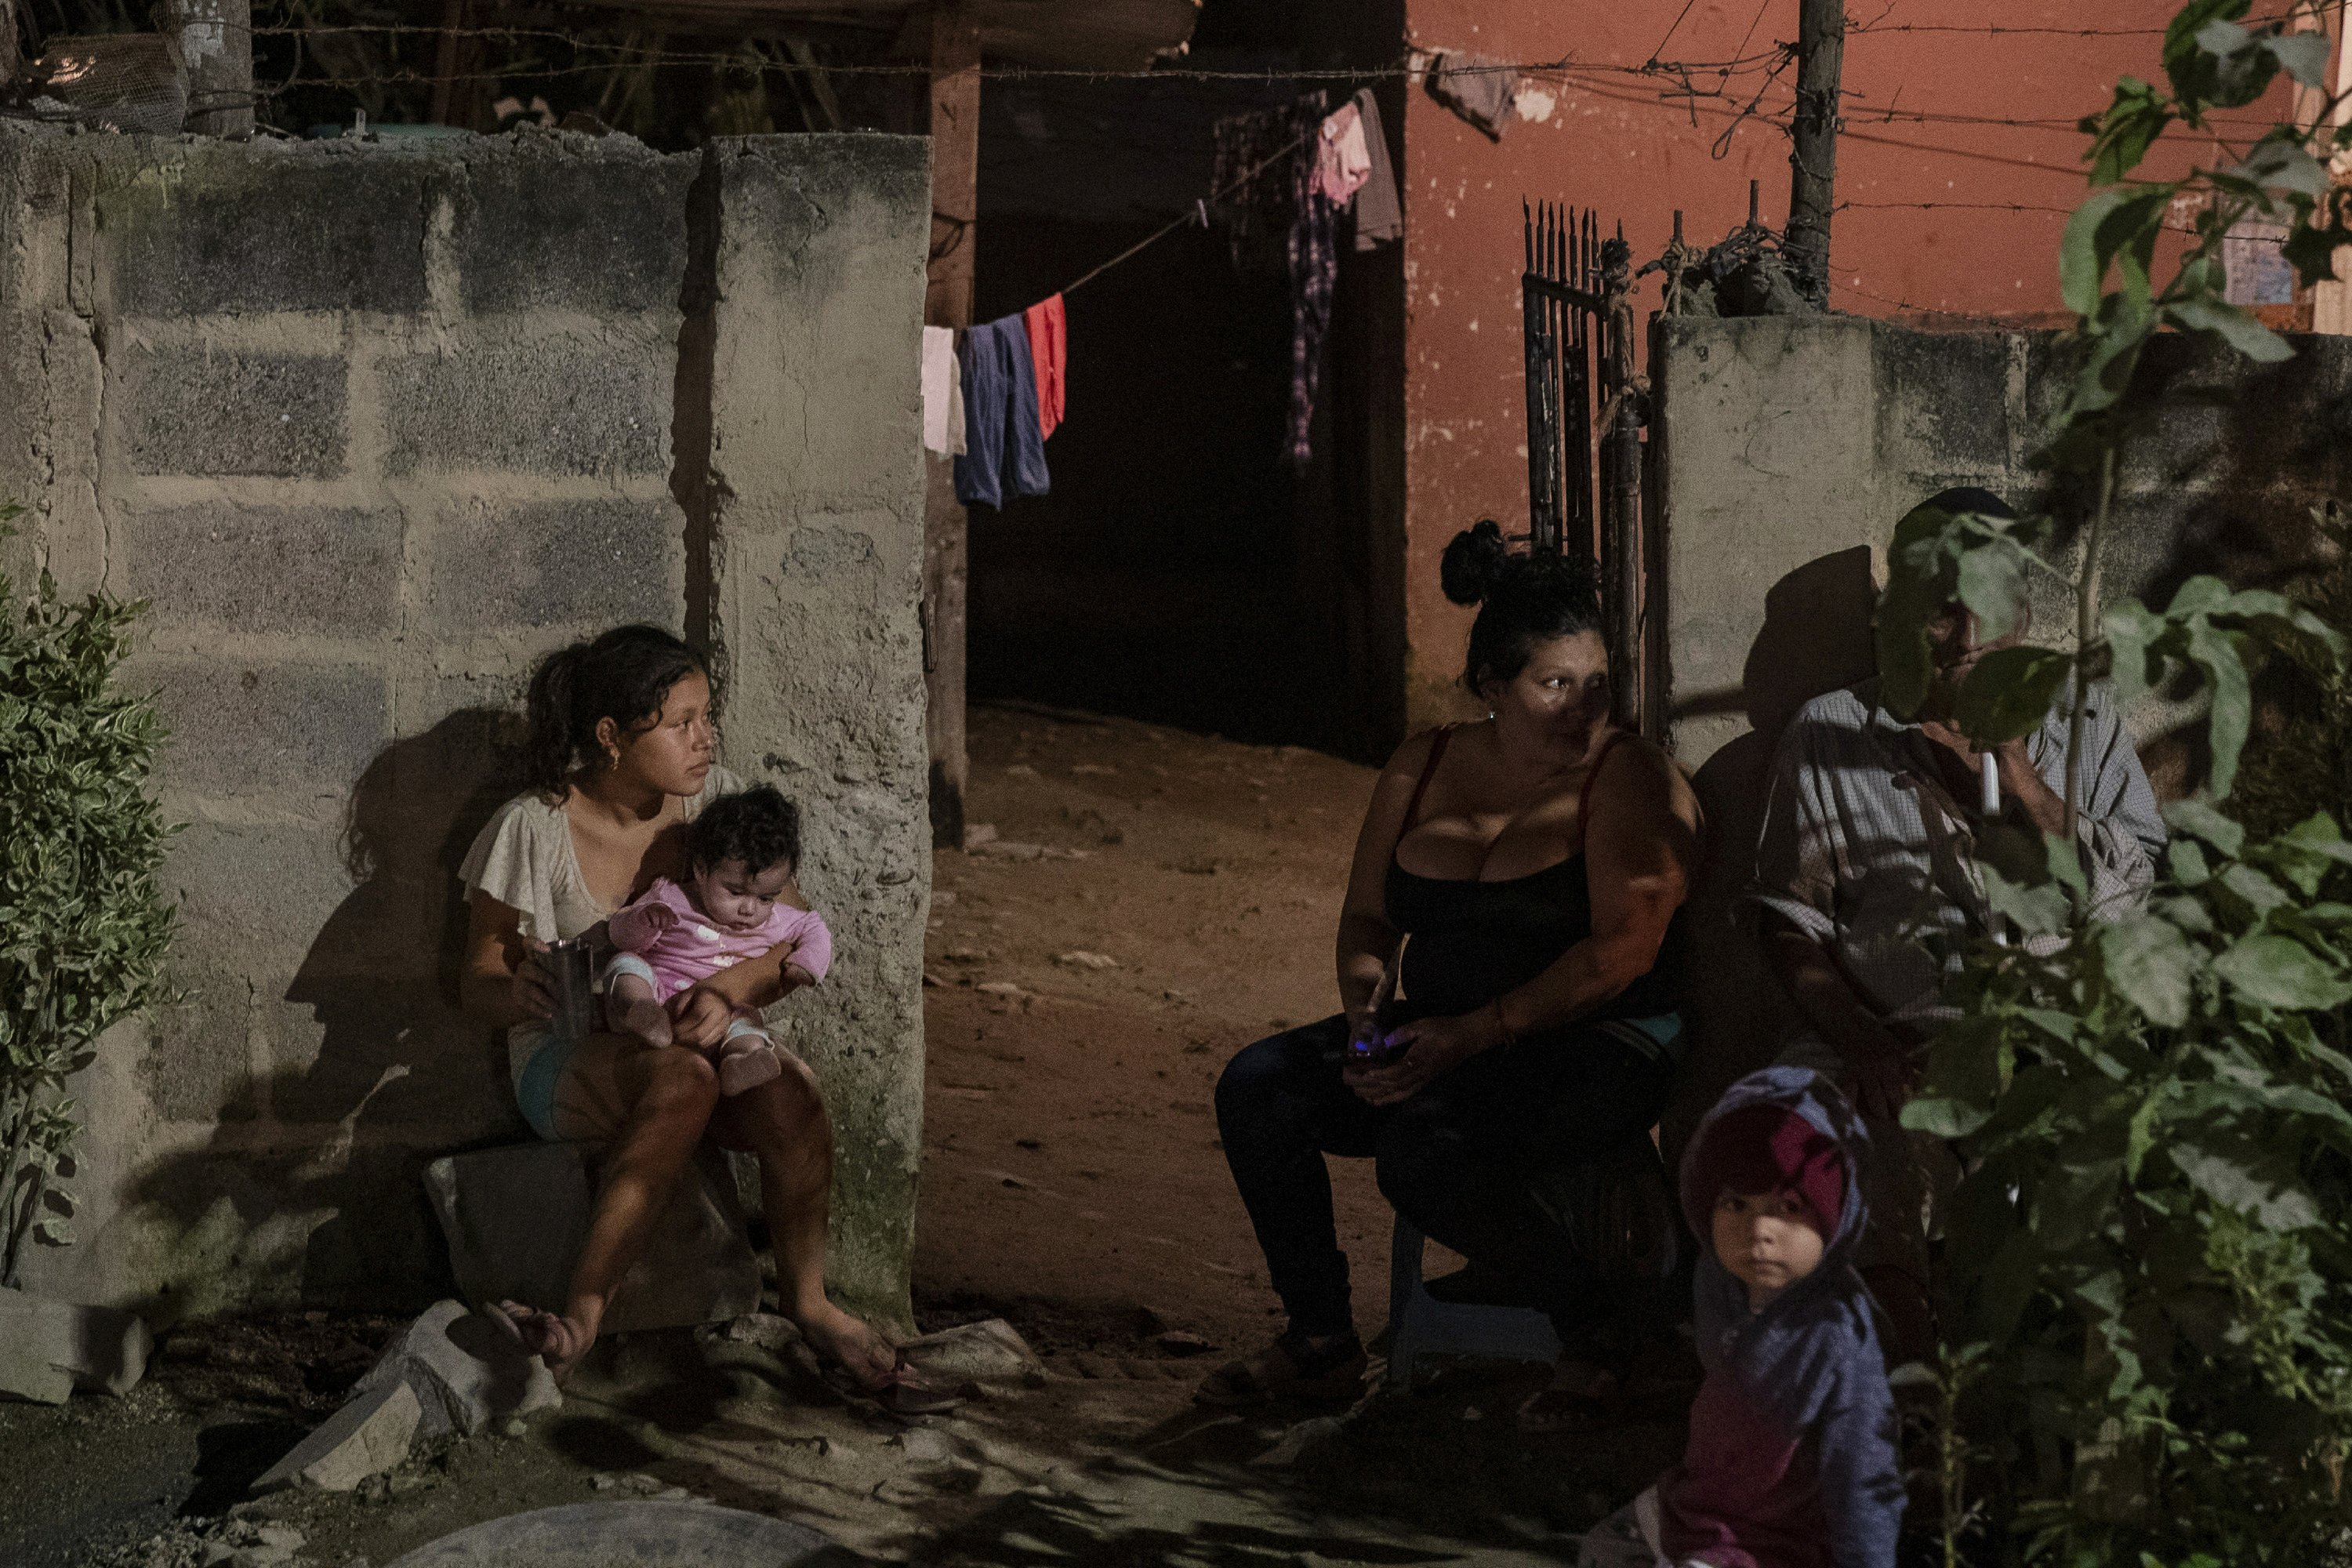 Denied asylum, migrants return to place they fear most: home